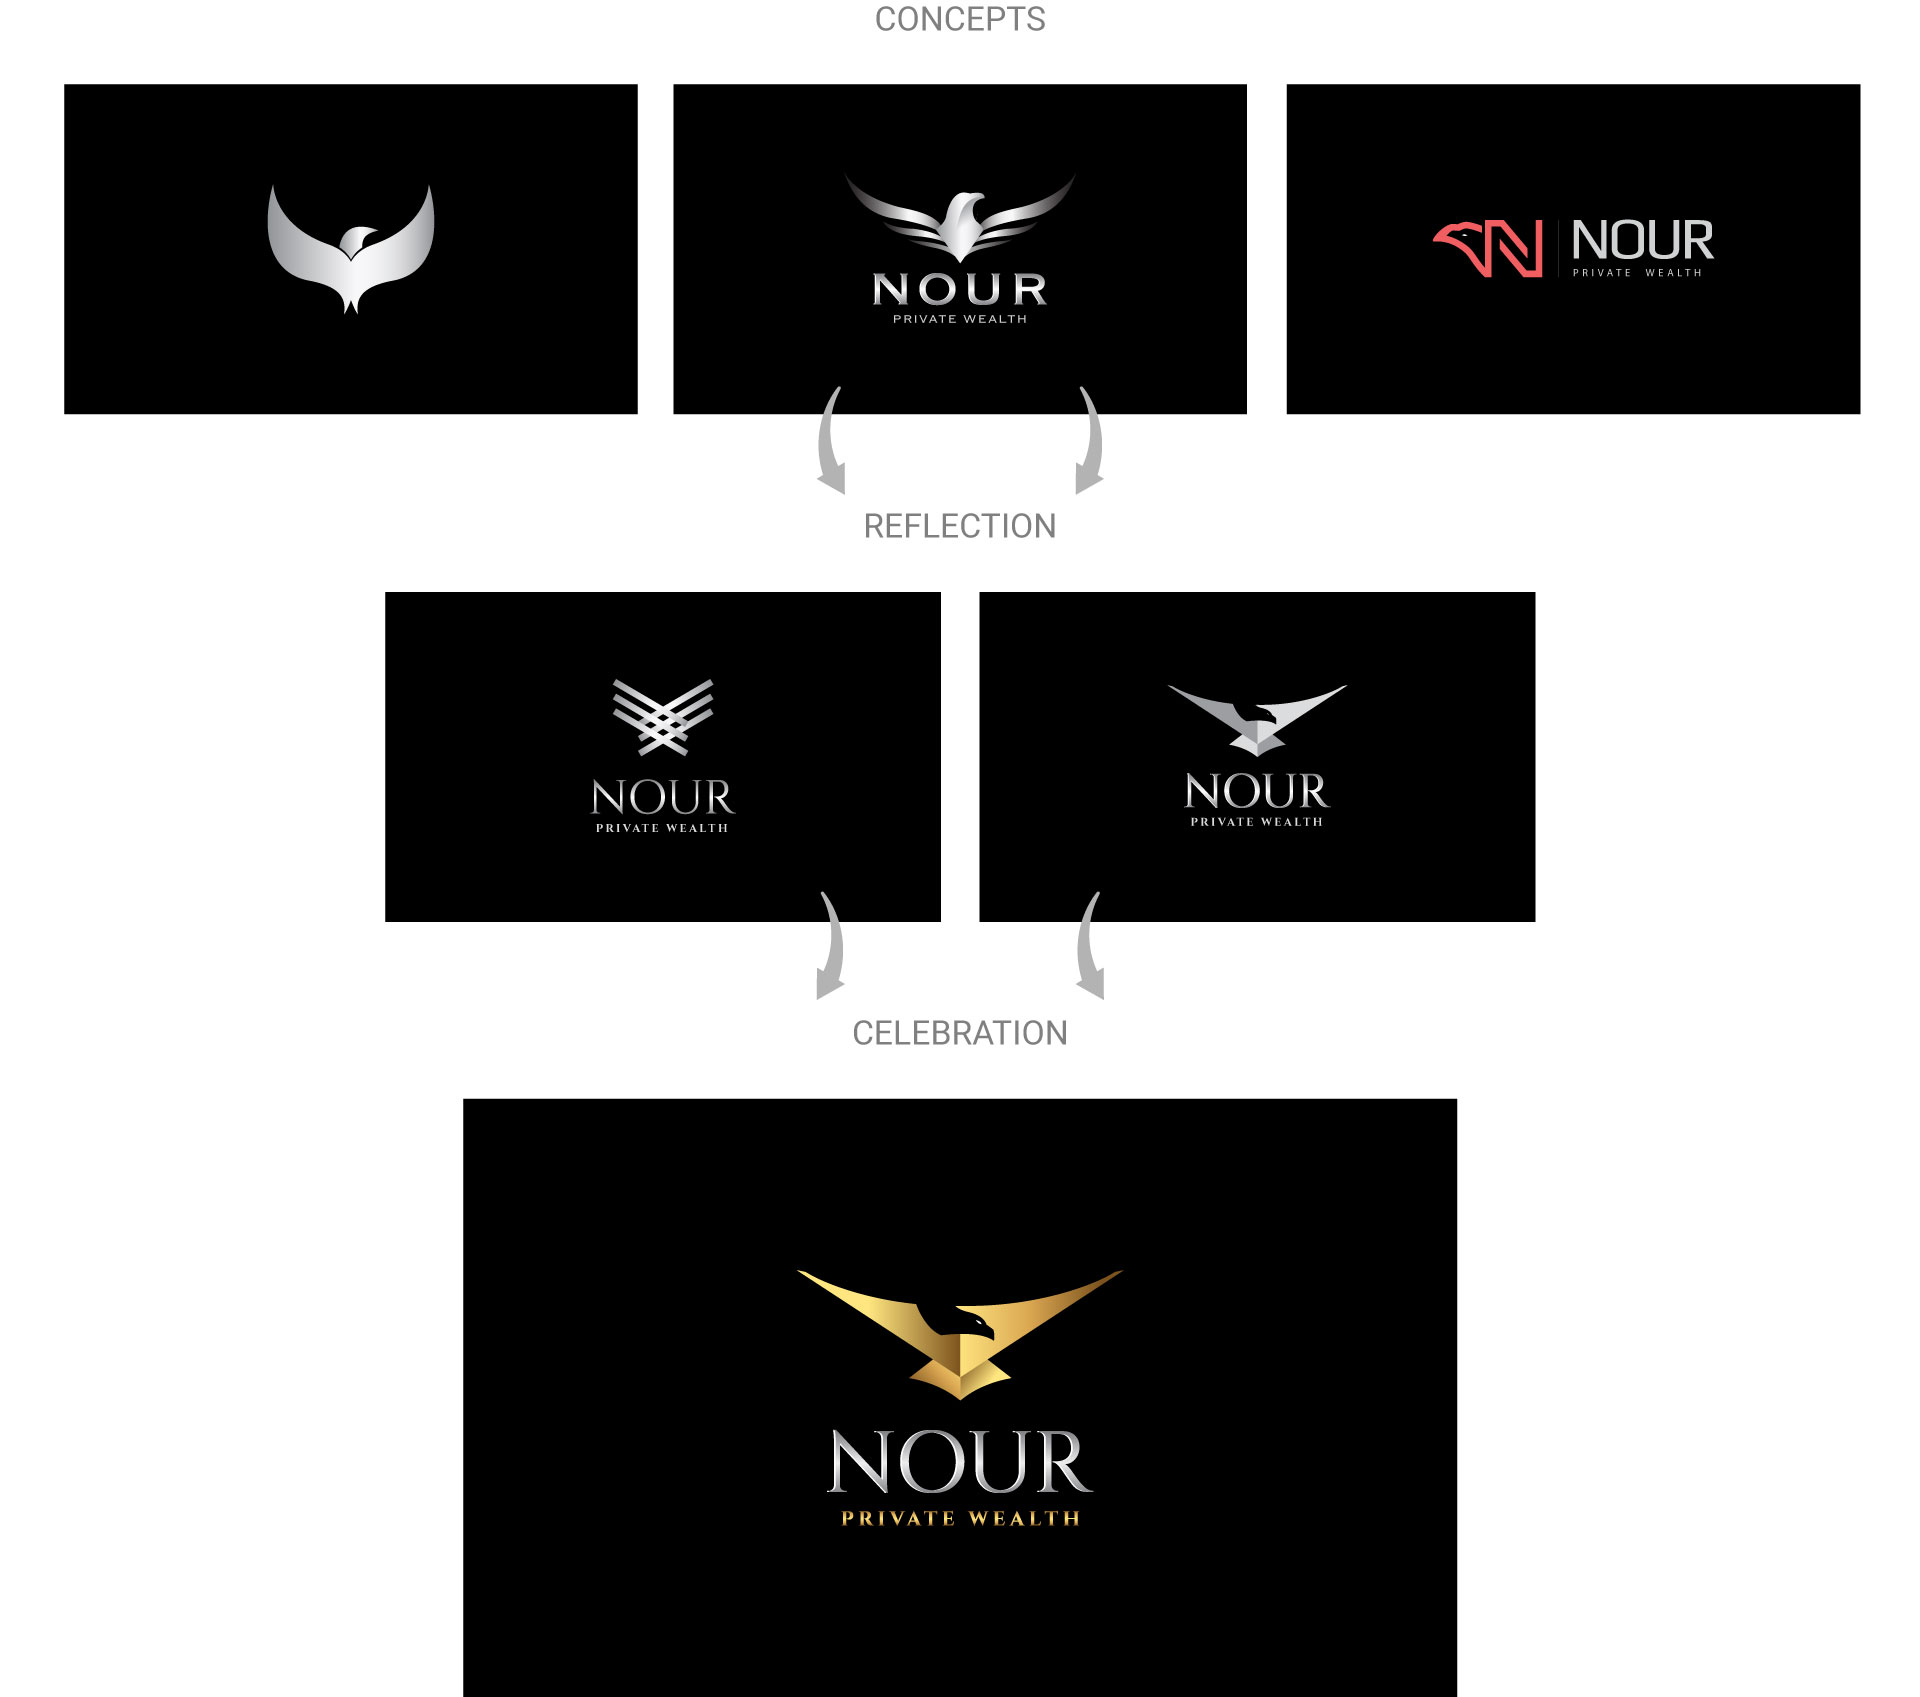 nour-private-wealth-logo-design-process-by-mapleweb-vancouver-canada